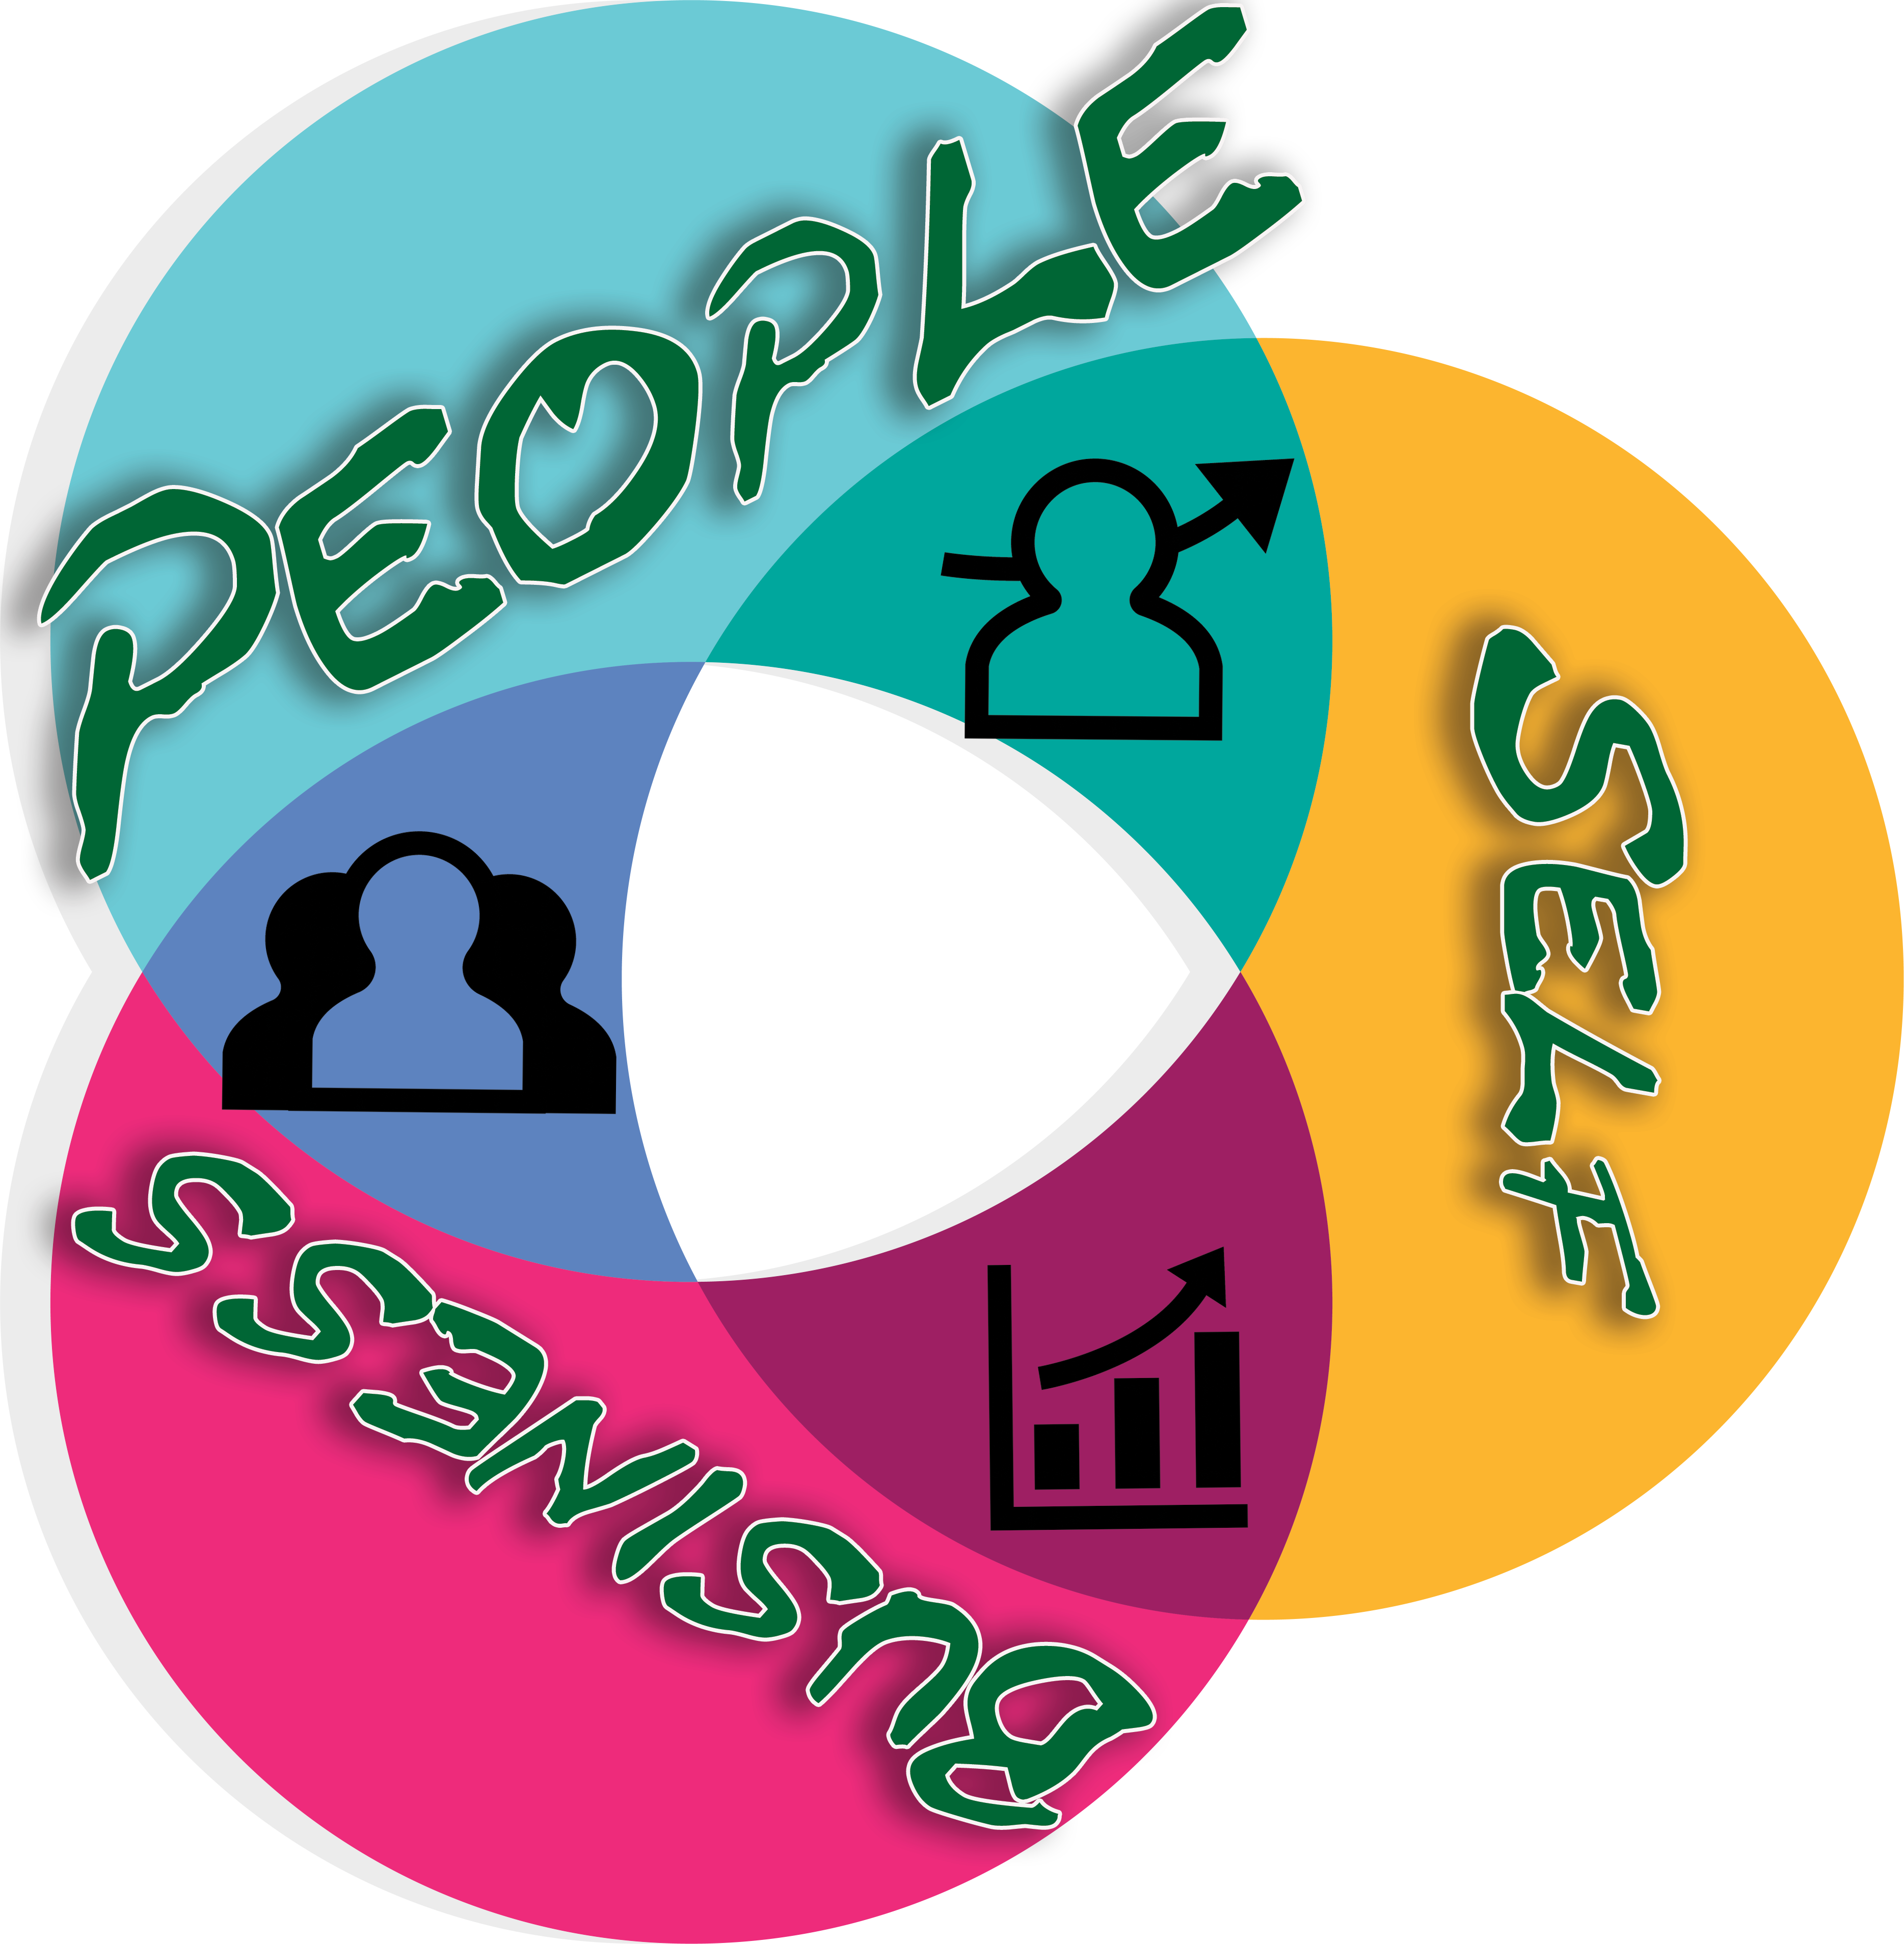 Course image for People- Acumen  Developing Professional Excellence